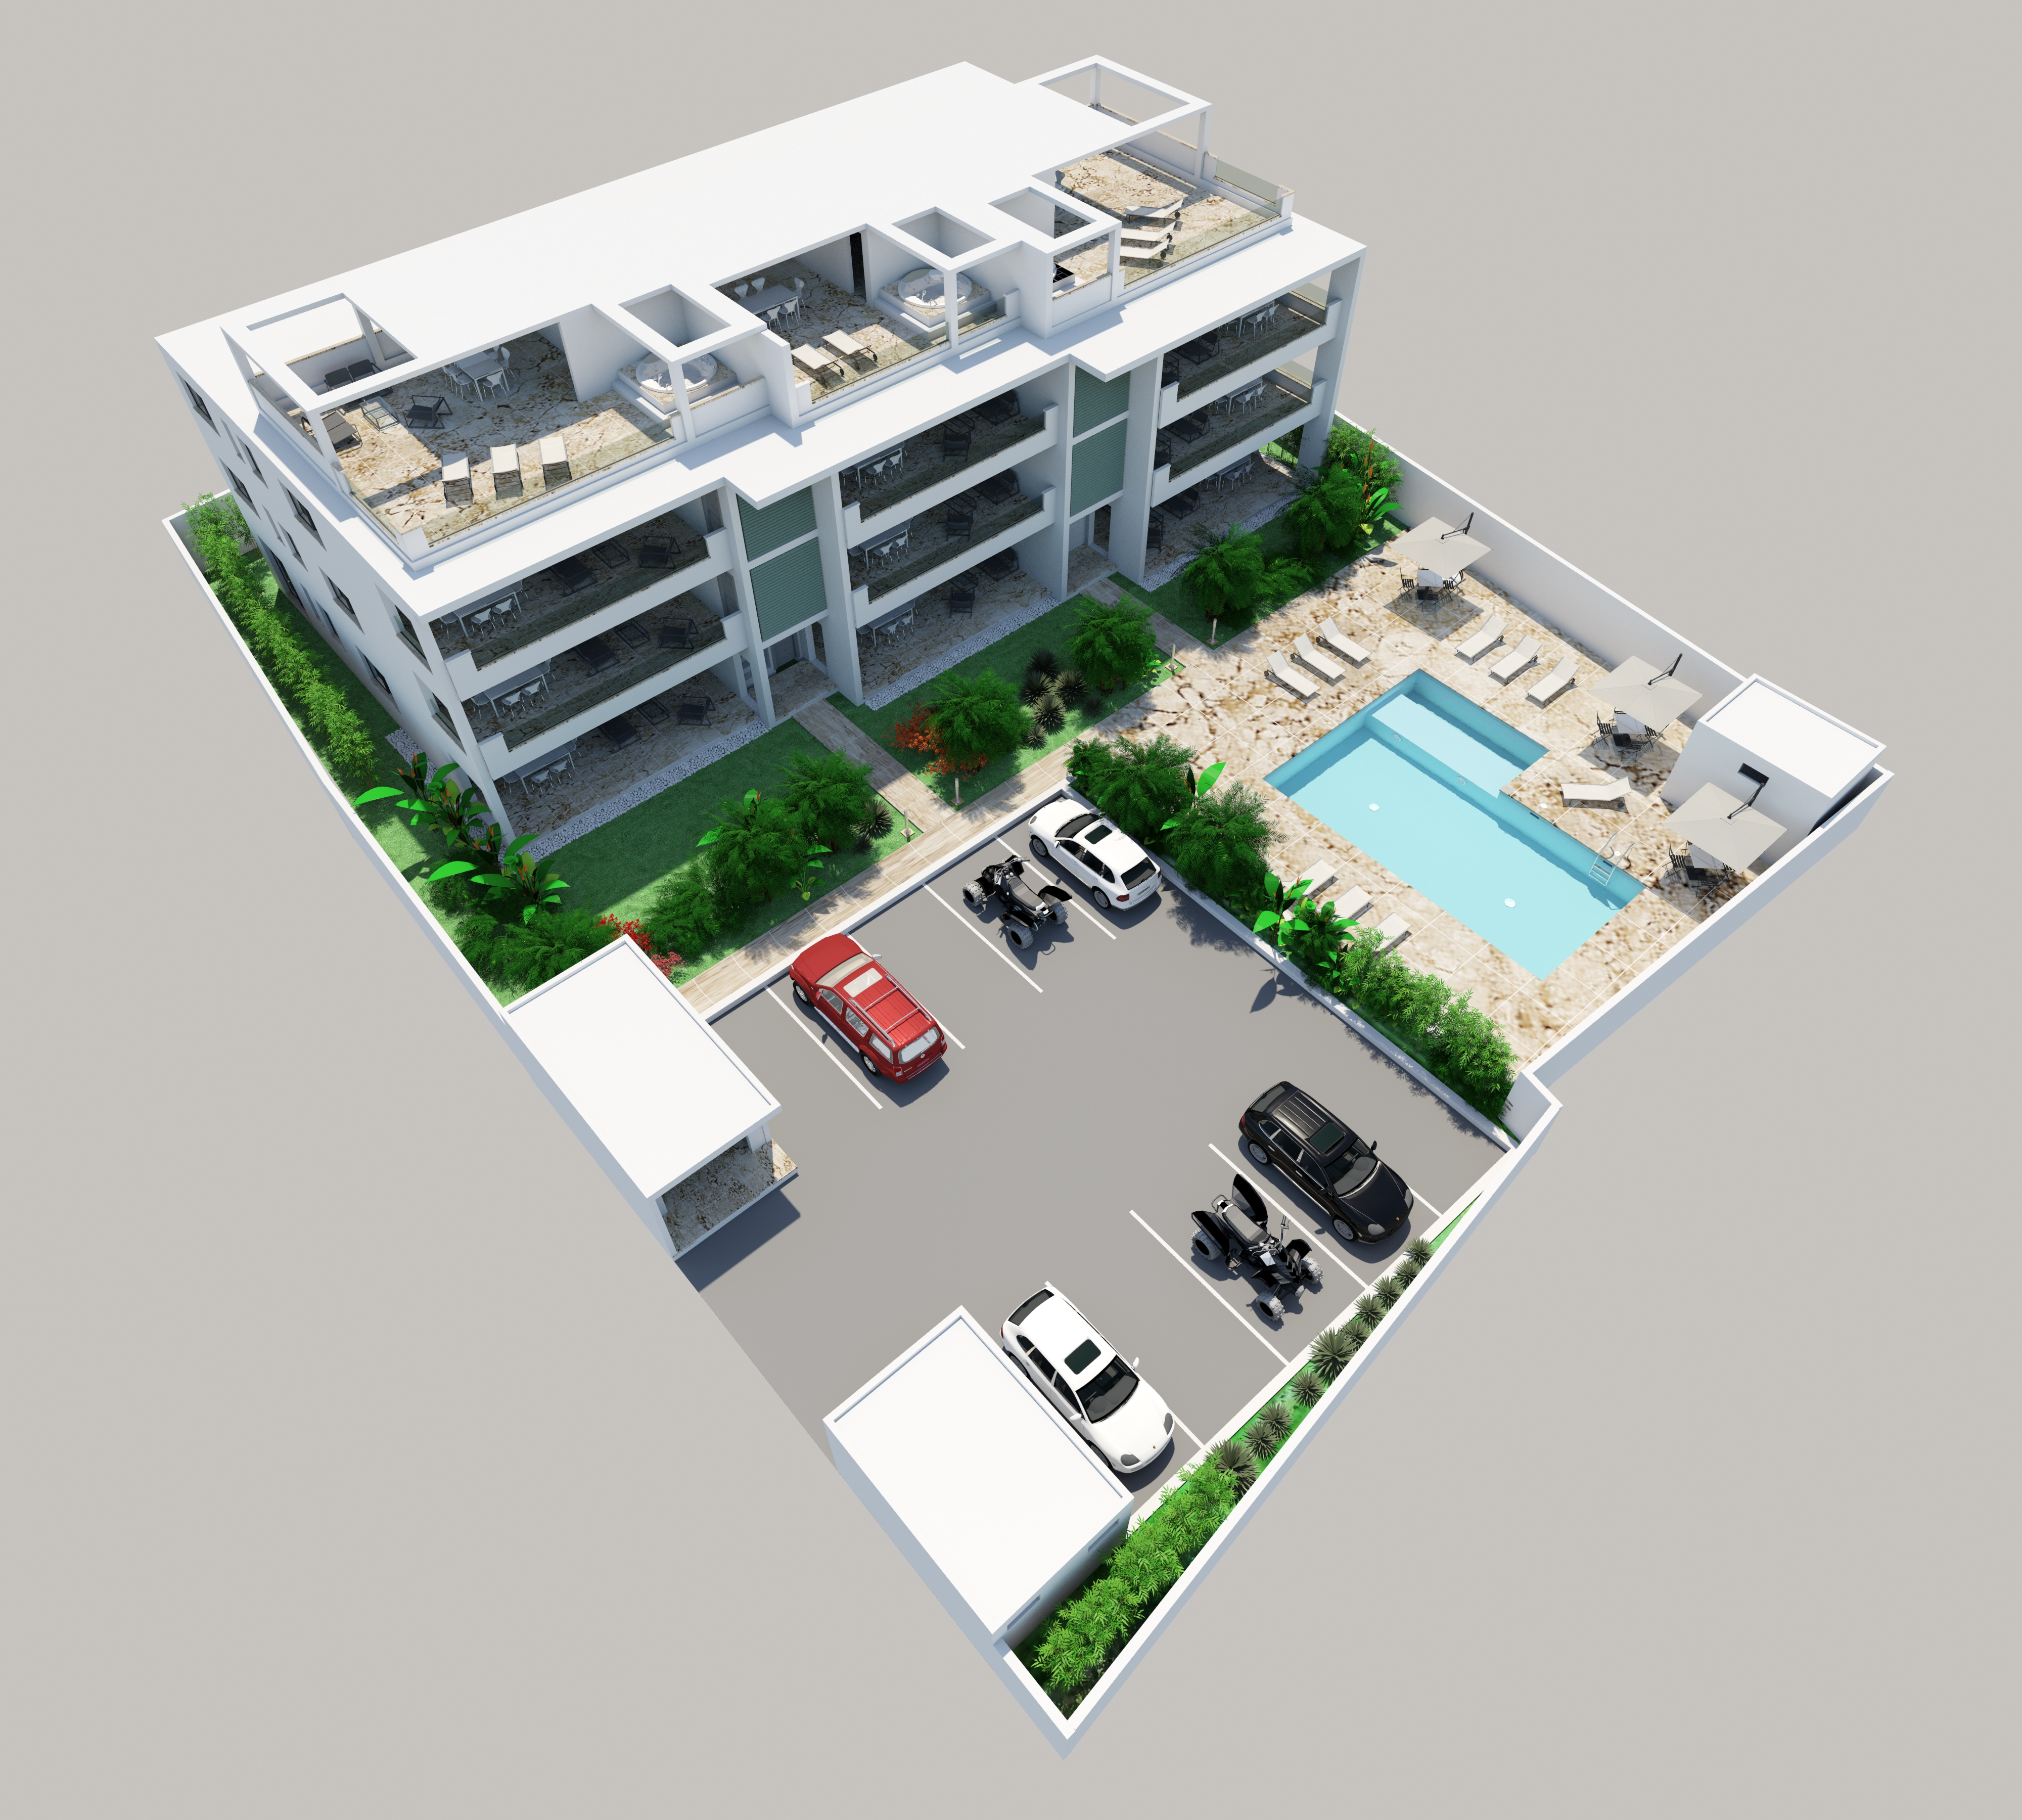 STELLA APART-HOTEL : 2 & 3 BED CONDOS FROM $274,000 USD